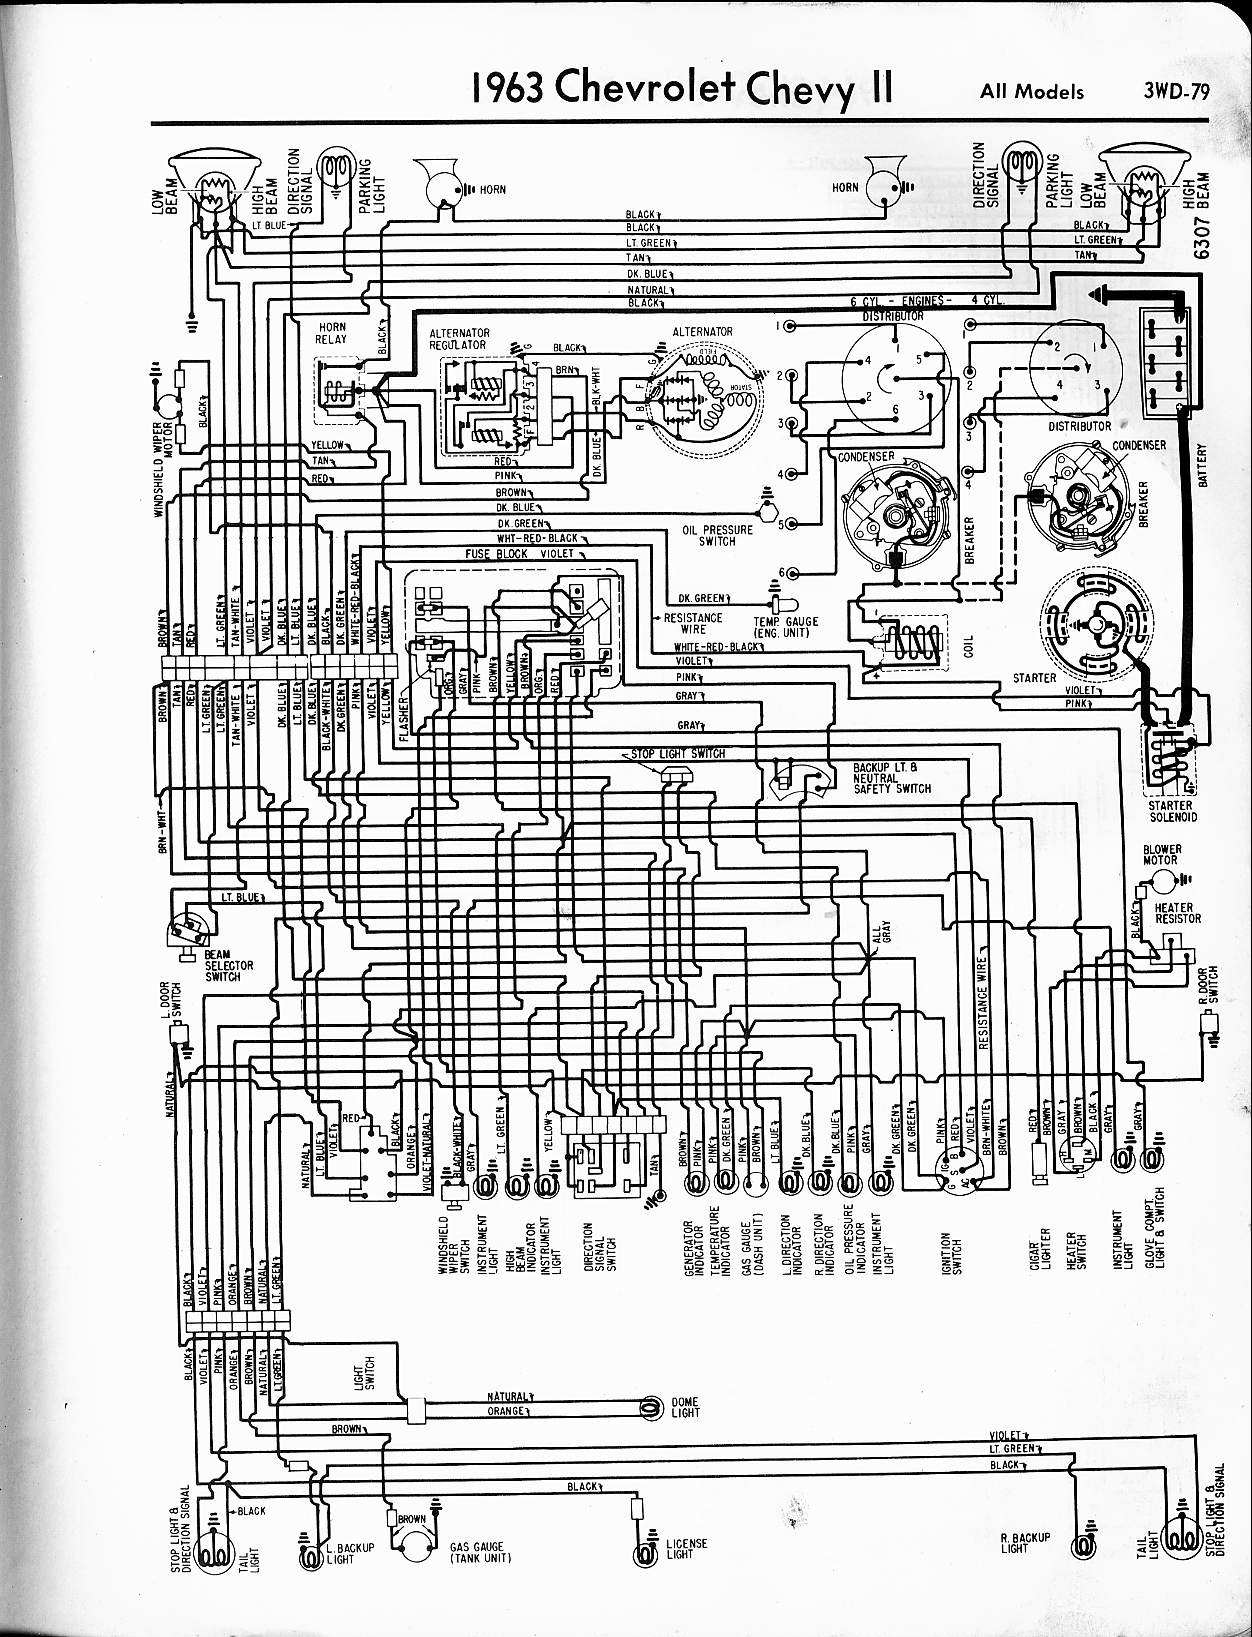 MWireChev63_3WD 079 57 65 chevy wiring diagrams 1963 corvette wiring diagram at gsmx.co